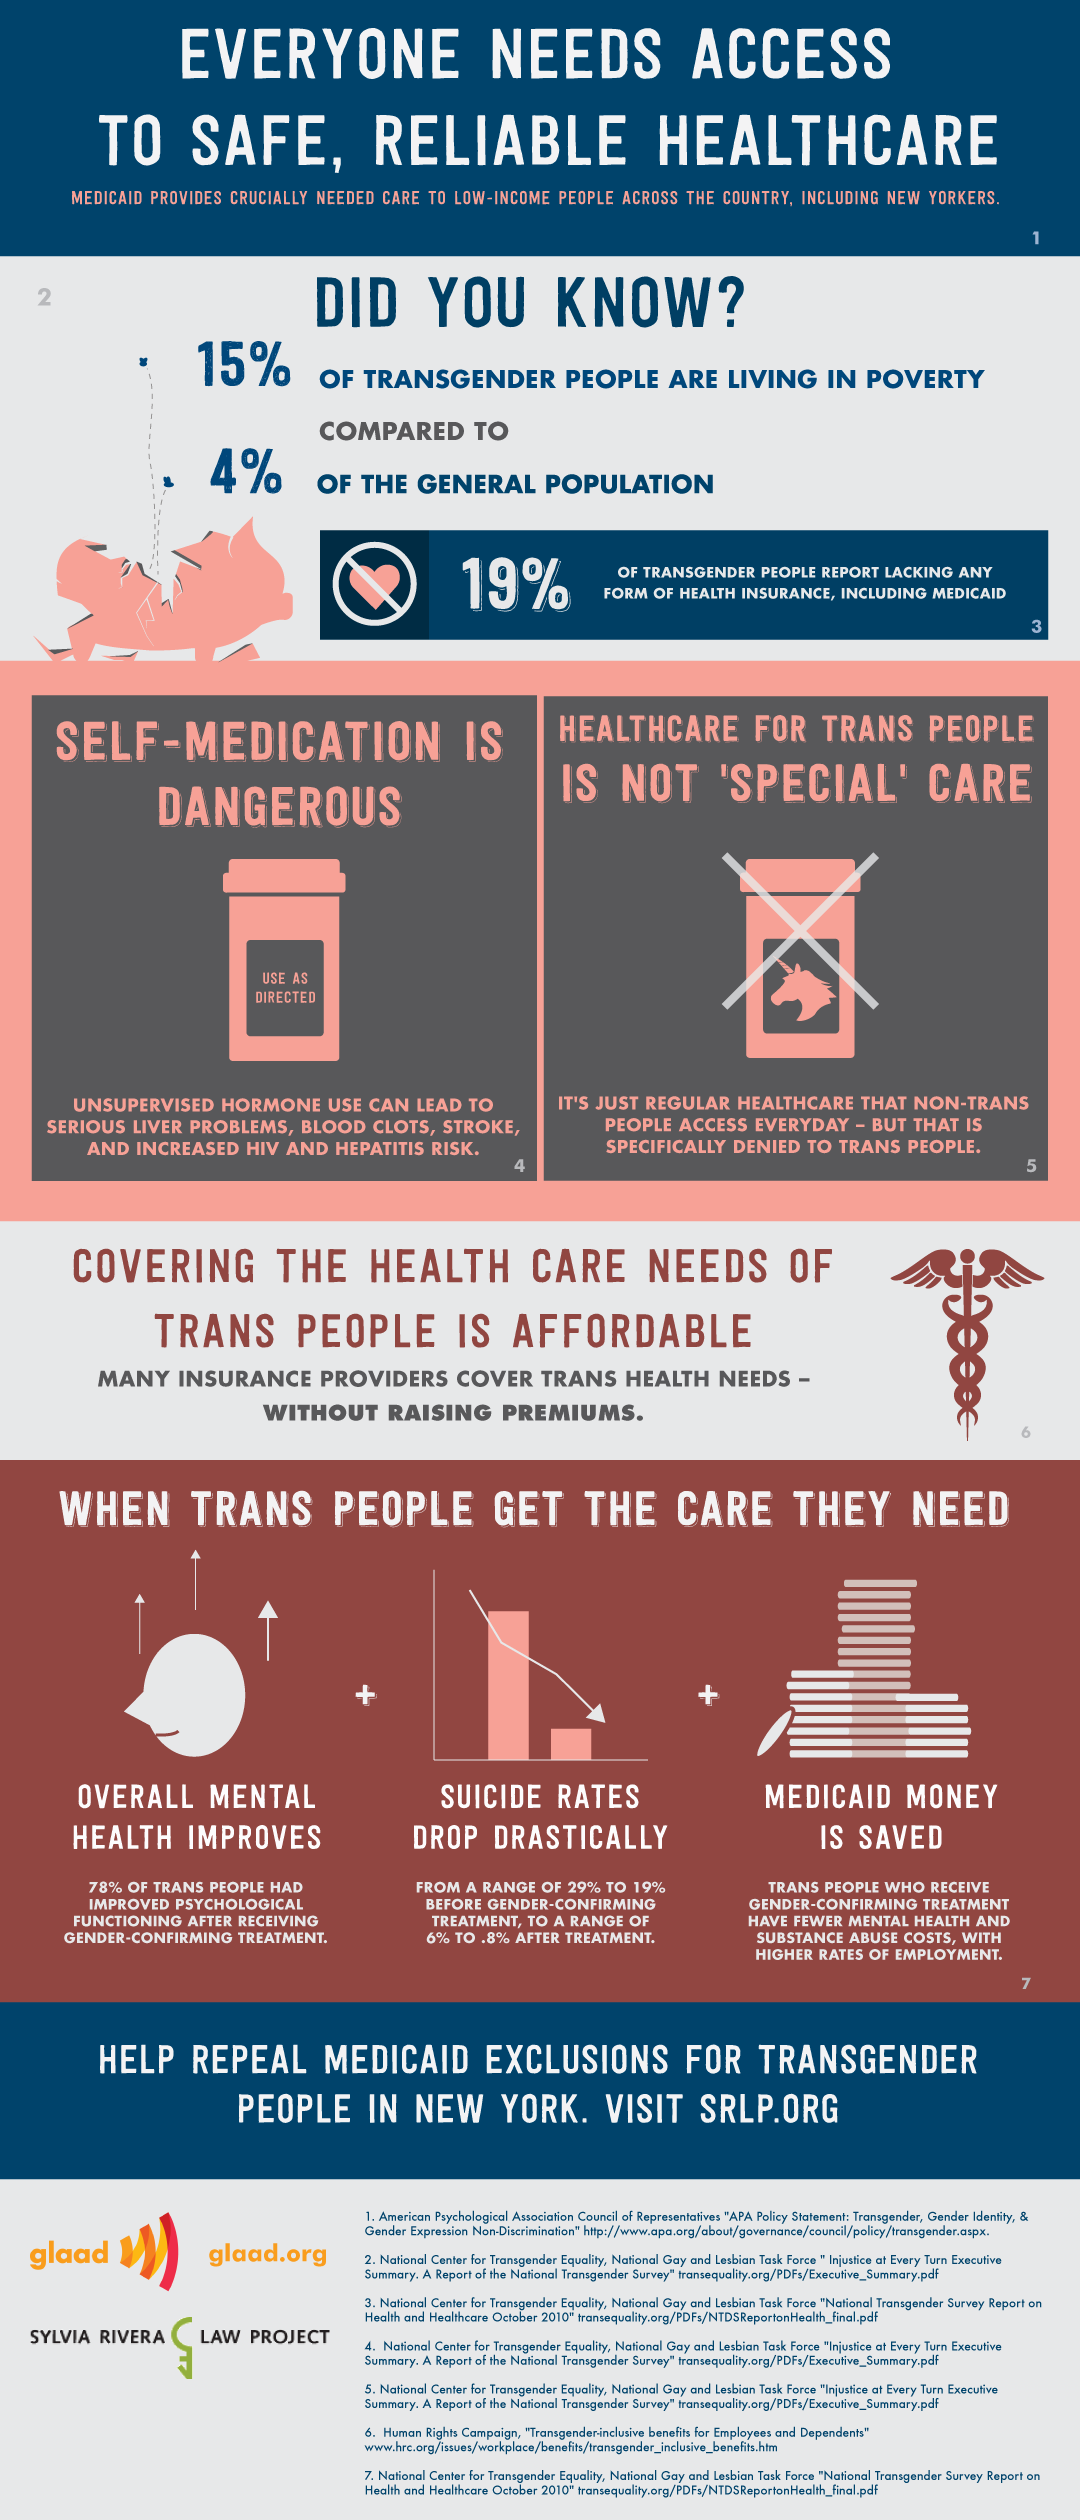 Healthcare Realities for Trans and Gender Non Conforming People